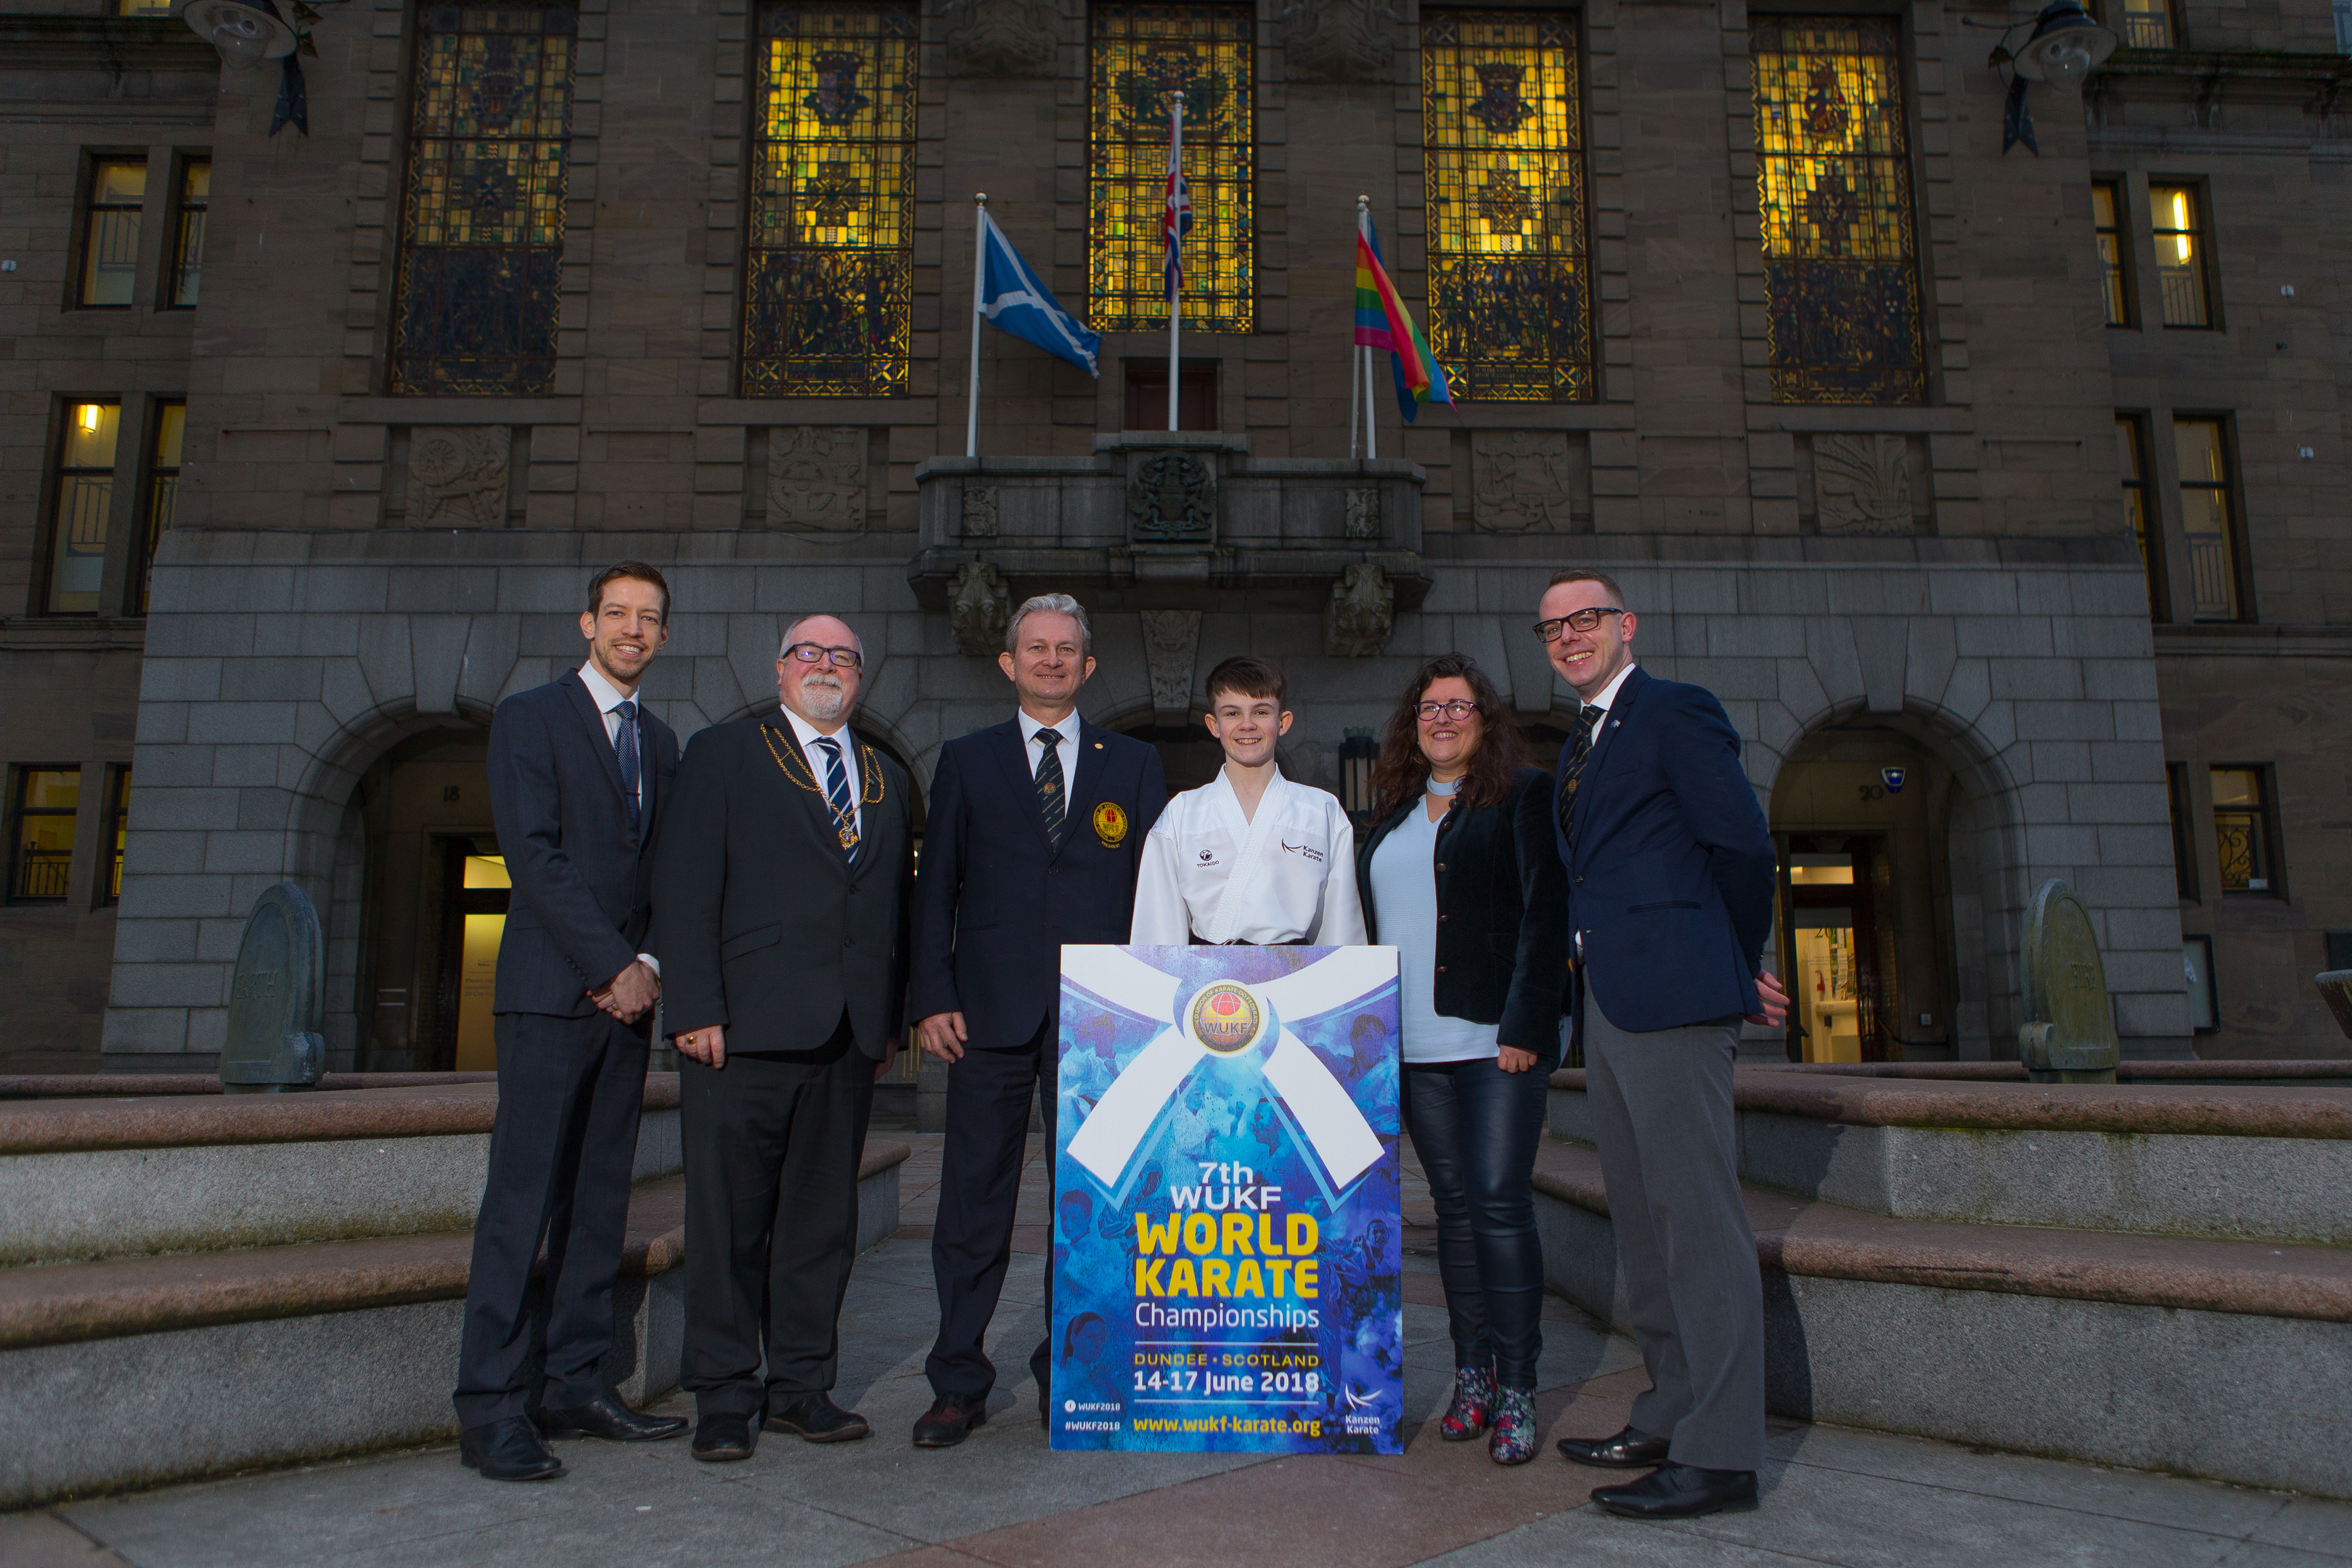 (Left) Cllr John Alexander, Depute Provost Bill Campbell, Dr Liviu Crisan (President of the World Union of Karate Federations), Oliver Bruce, Cllr Lynne Short and Roy O'Kane (WUKF Dundee 2018 Organising Committee Chair)